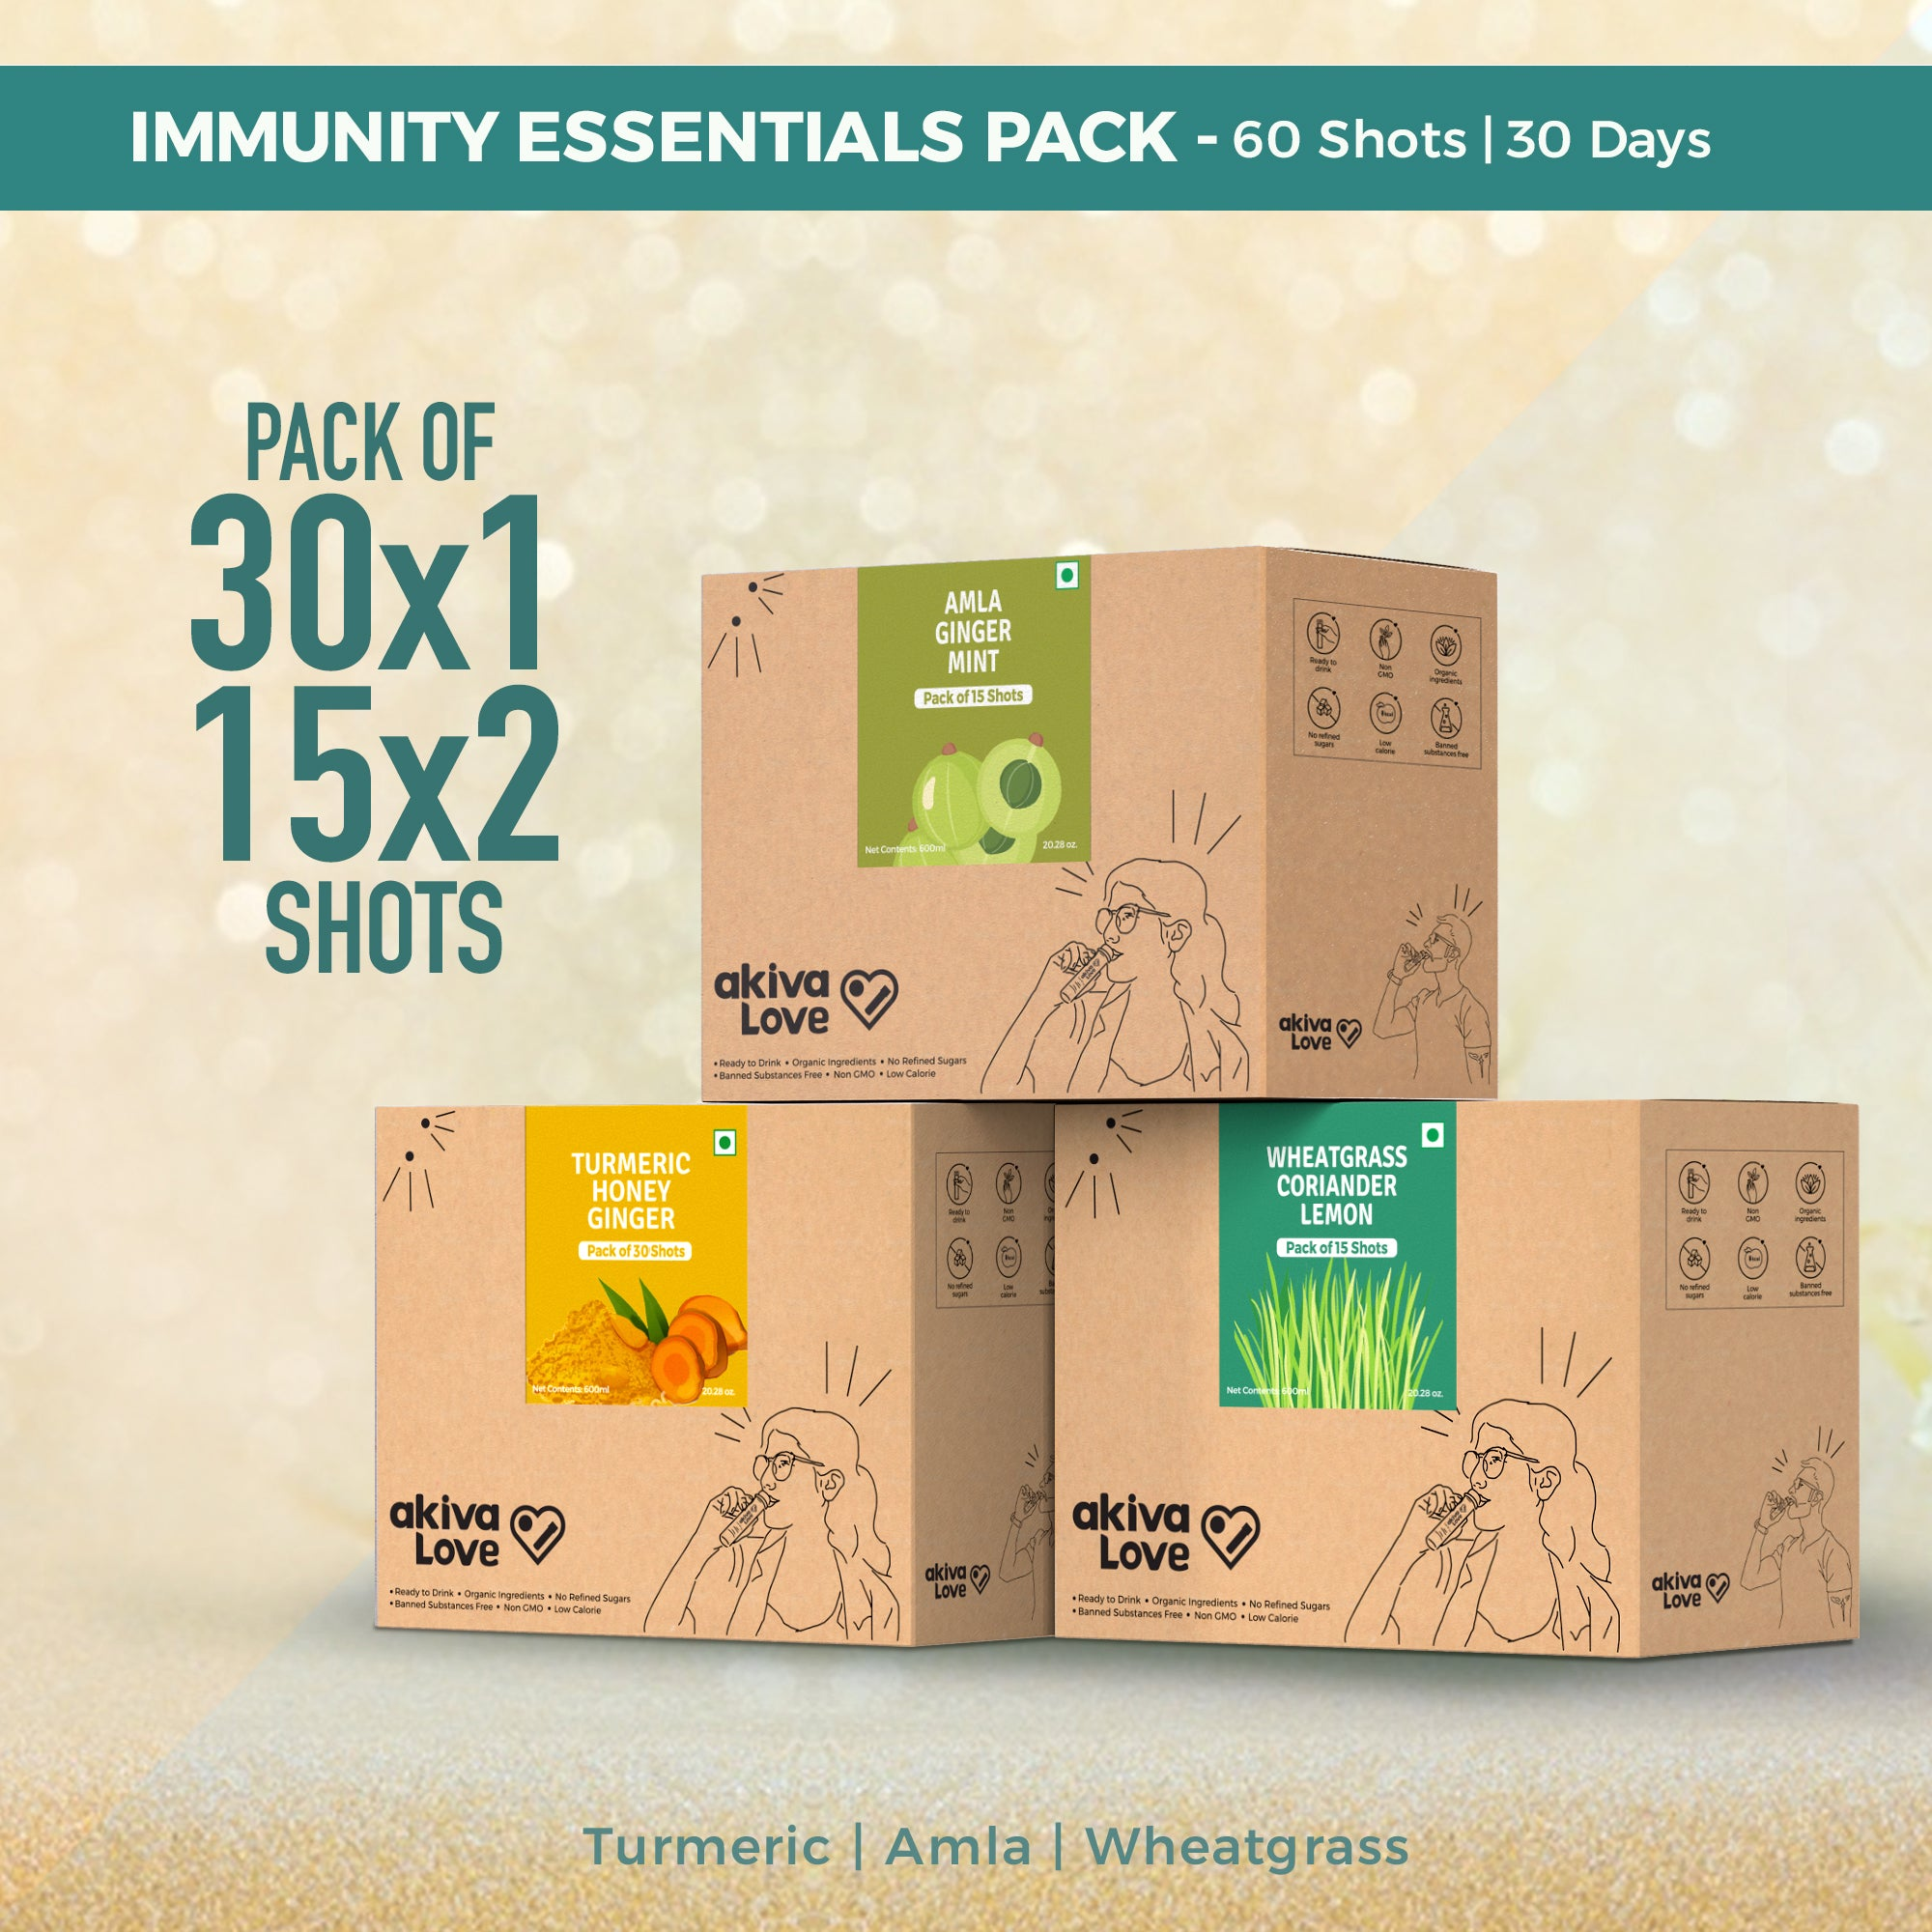 Immunity Essentials Pack - 60 shots | 30 days | Turmeric + Amla + Wheatgrass